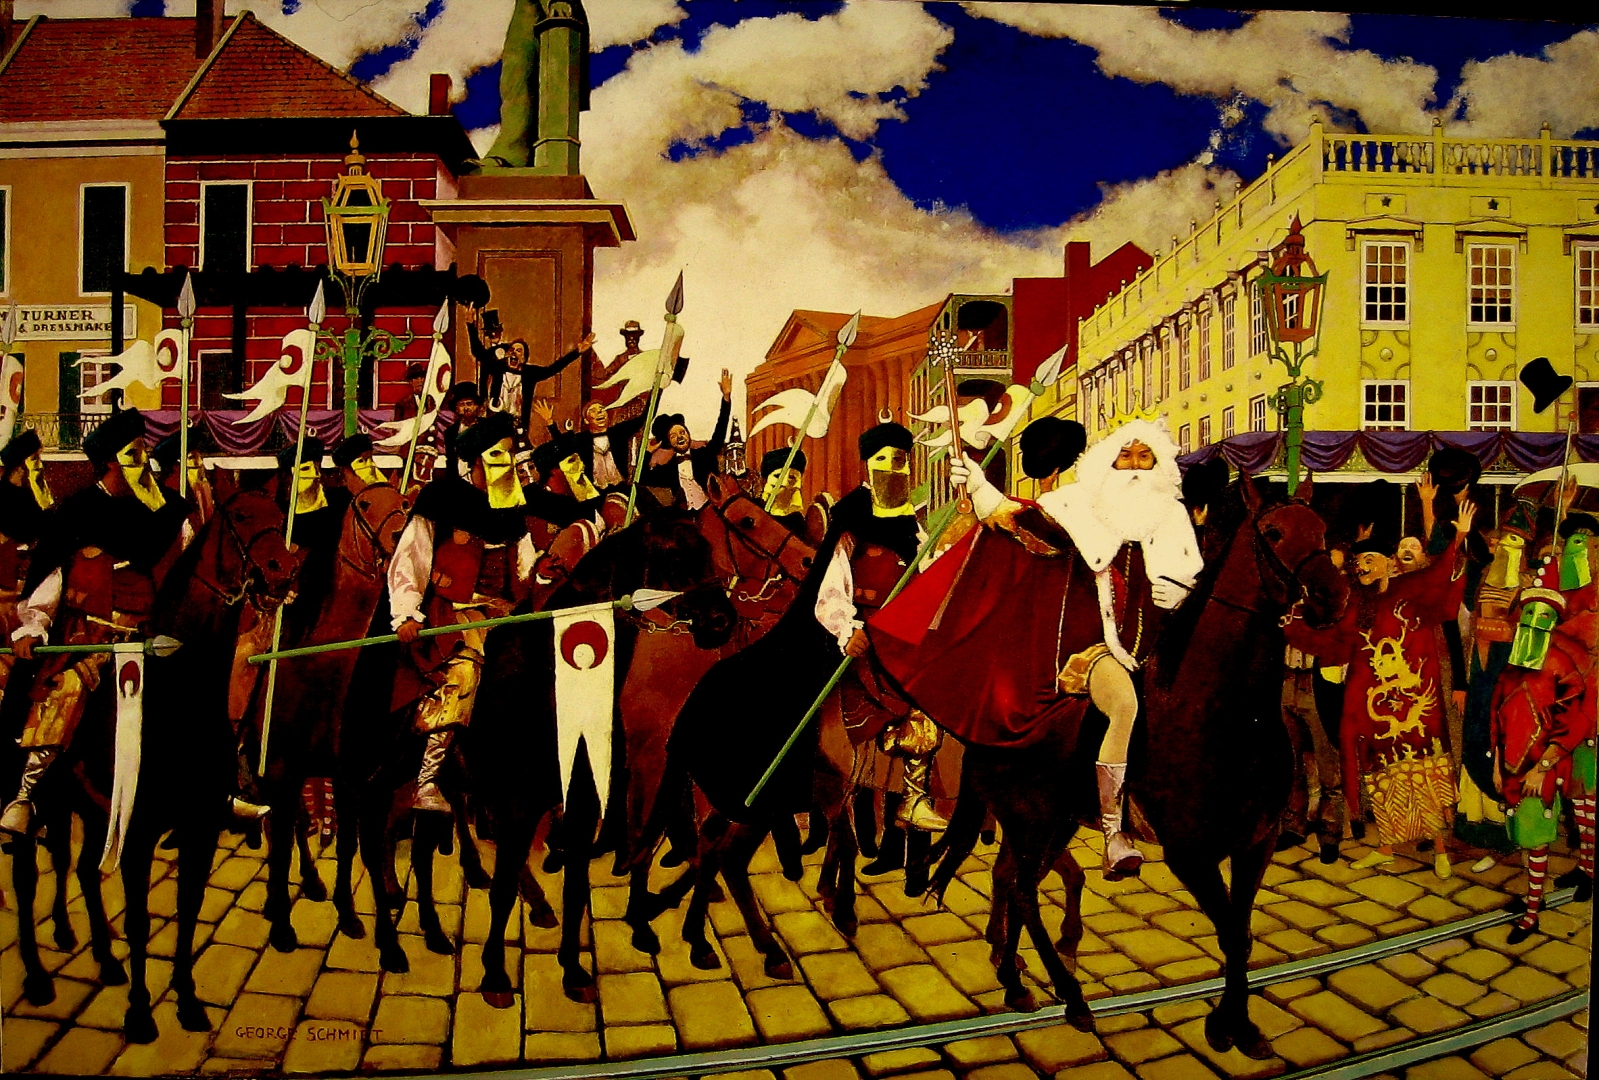 The First King of Carnival, Lewis Soloman 1872 :: Oil on canvas, This painting was executed for the Rex Organization's proclamation poster in 1992